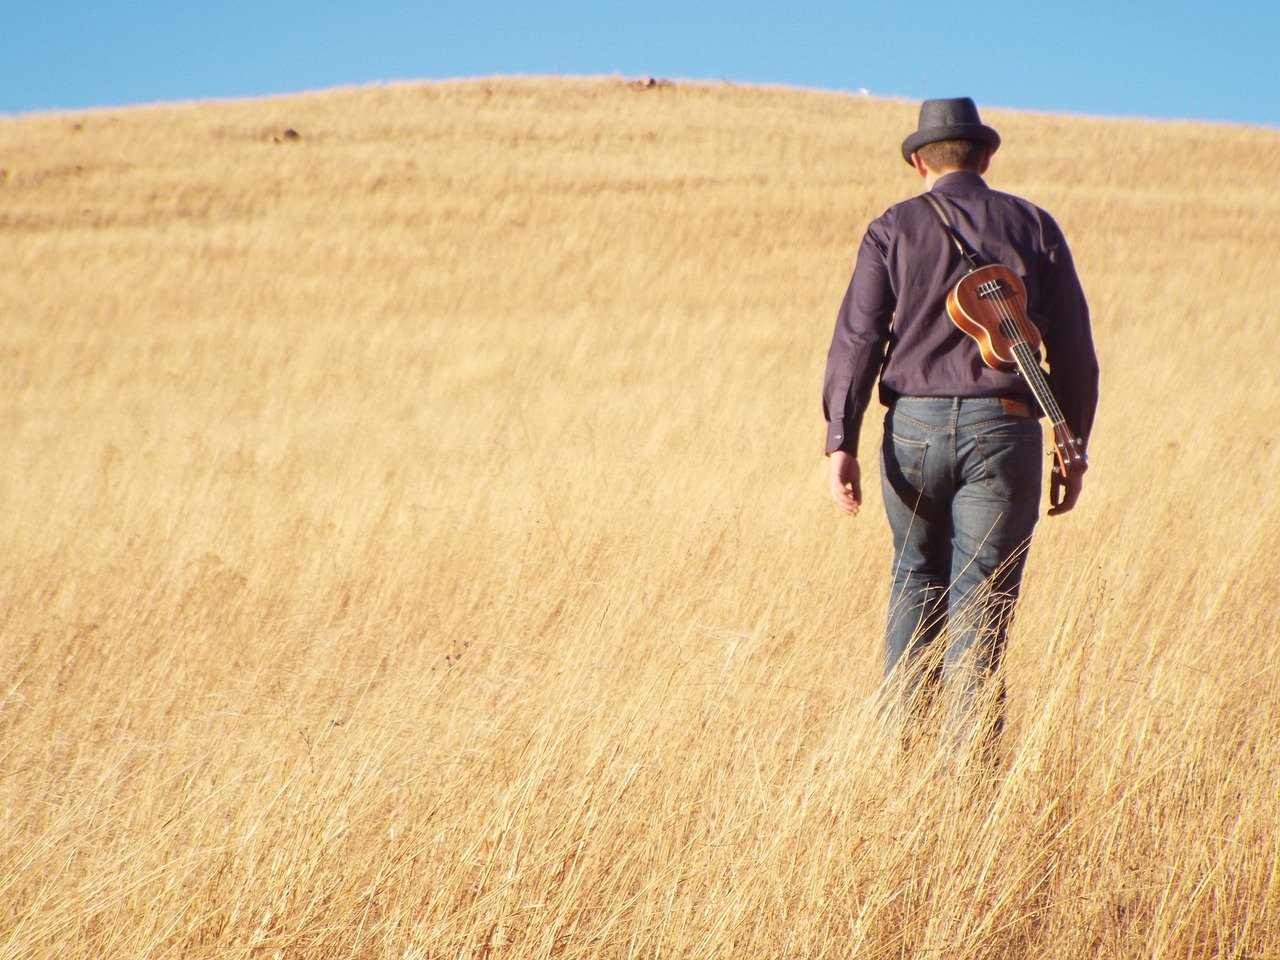 Basic Ukulele Photo: Pixabay